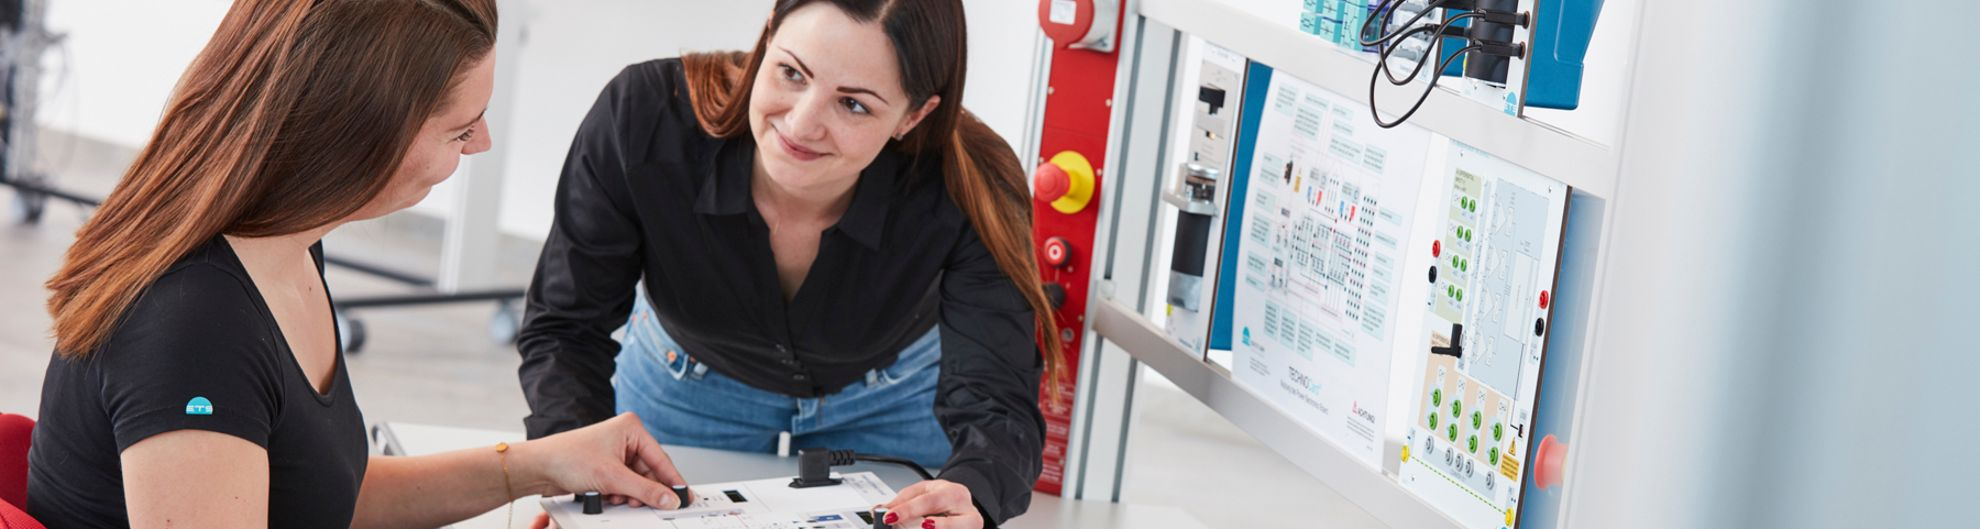 1 Solutions for Electrical Engineering